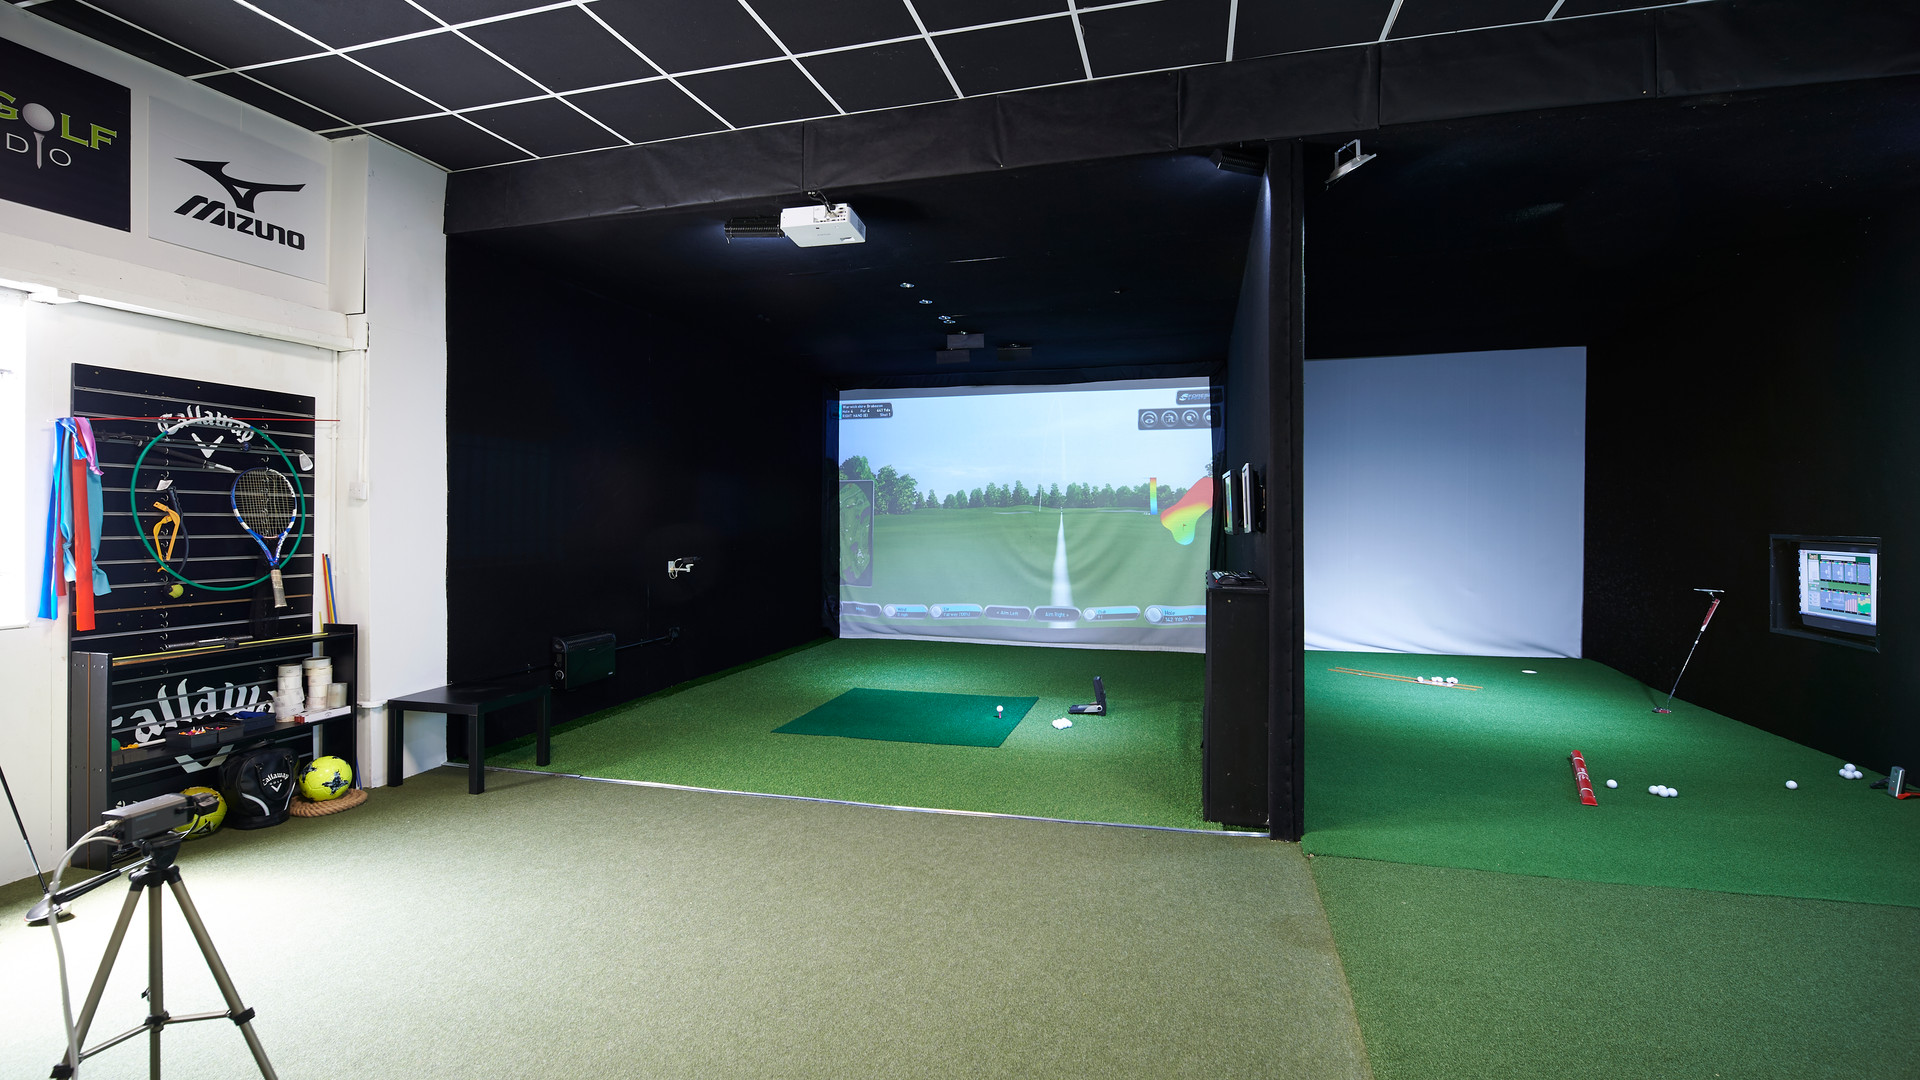 The Perfect place for golf improvement